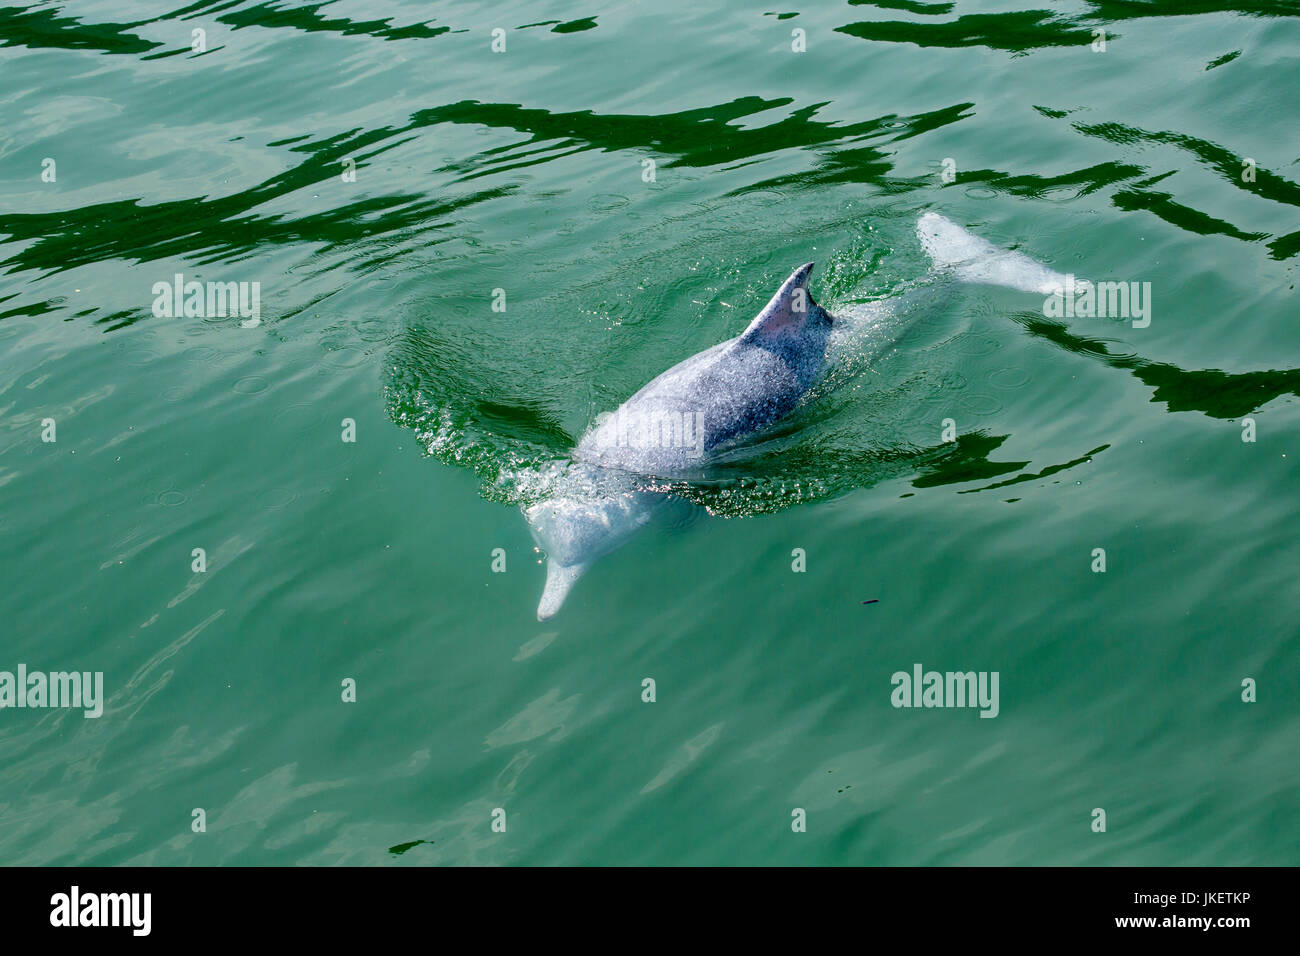 A young Indo-Pacific Humpback Dolphin (Sousa chinensis) surfacing, with beautiful water pattern - Stock Image